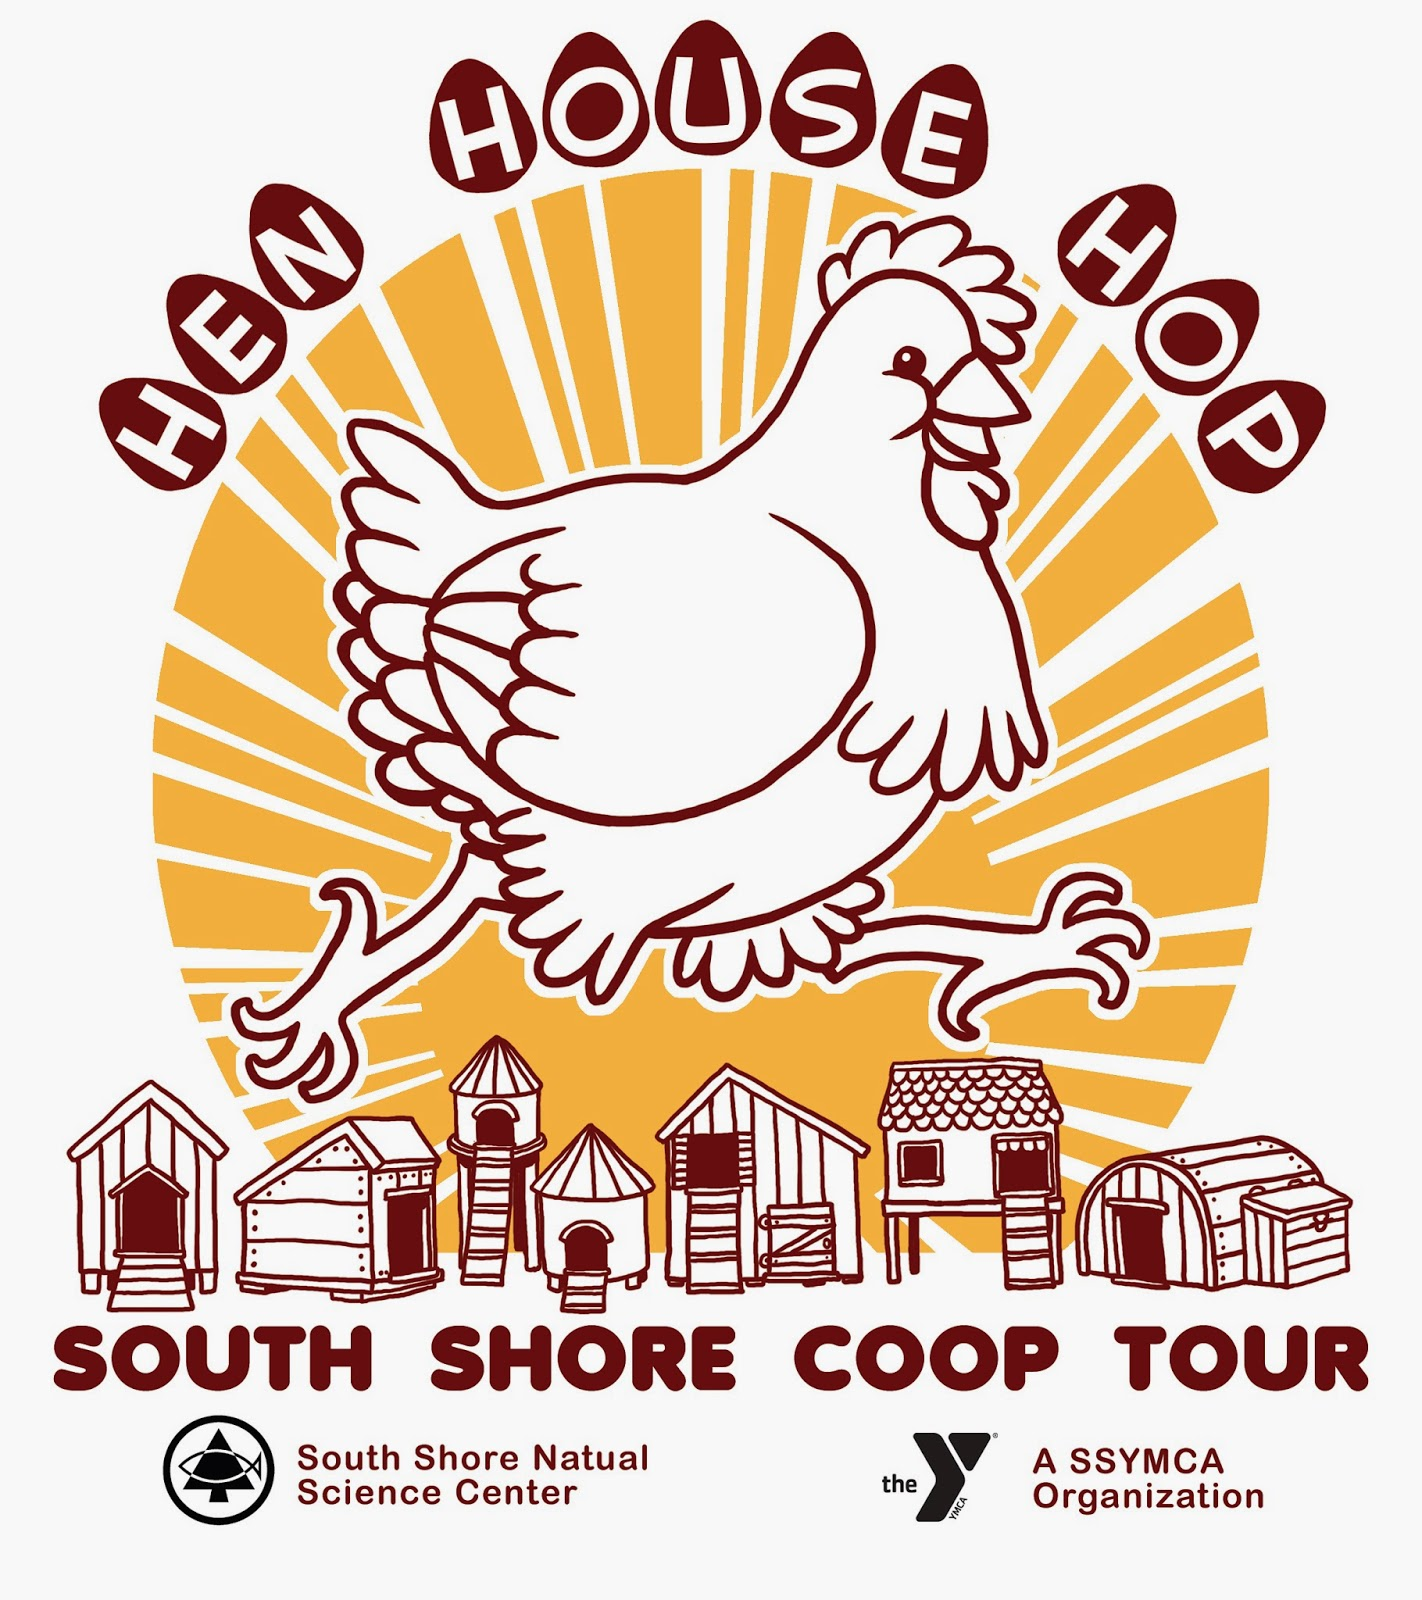 The coloring book tour opener - In Norwell Massachusetts The South Shore Natural Science Center Sponsors The Hen House Hop A Tour Of Local Coops That Starts At The Center